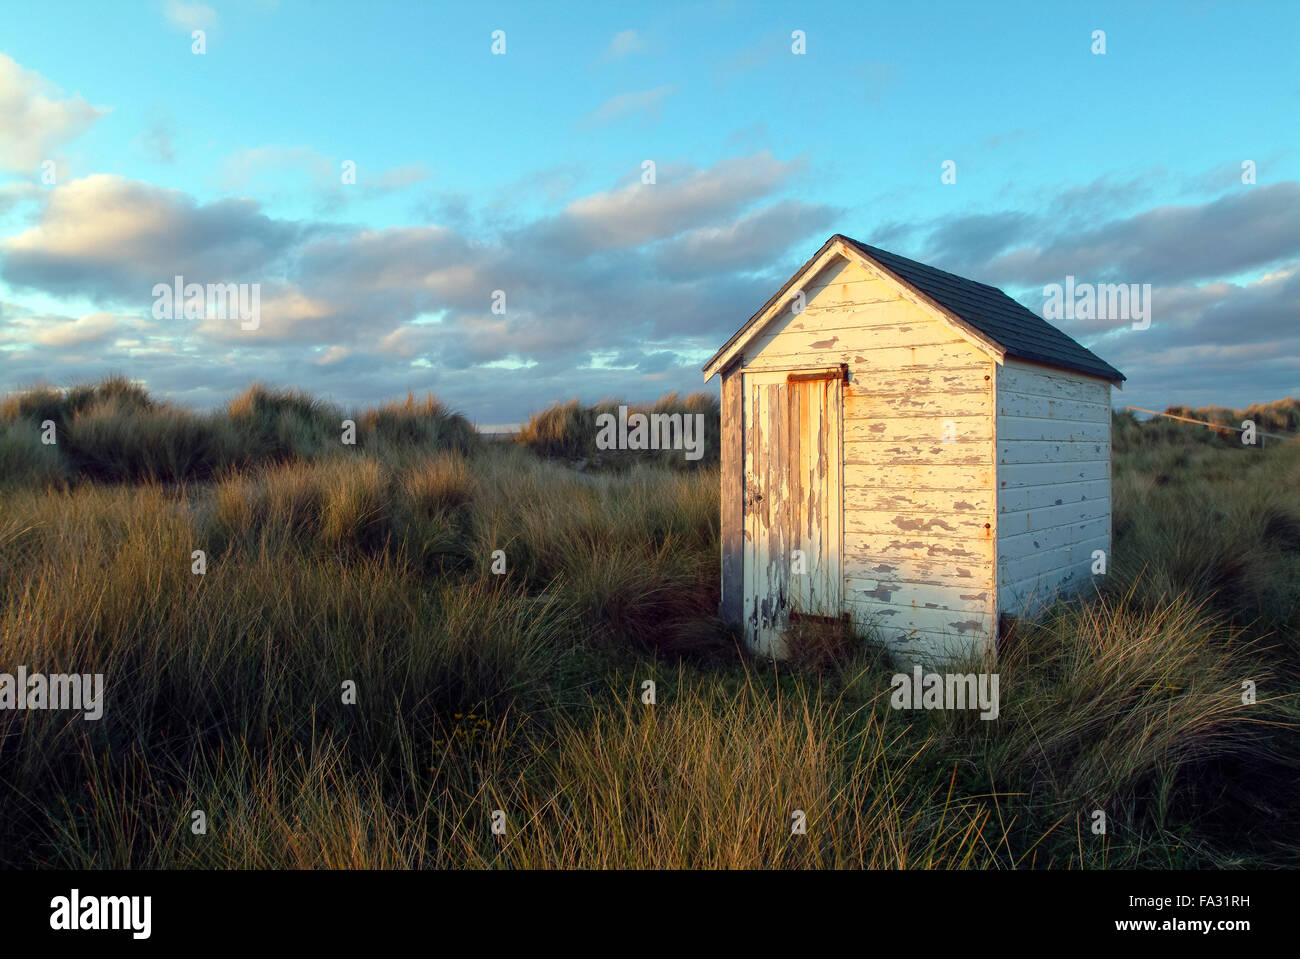 Der Magische Findhorn Garten Frei Haus Stock Photos And Frei Haus Stock Images Alamy